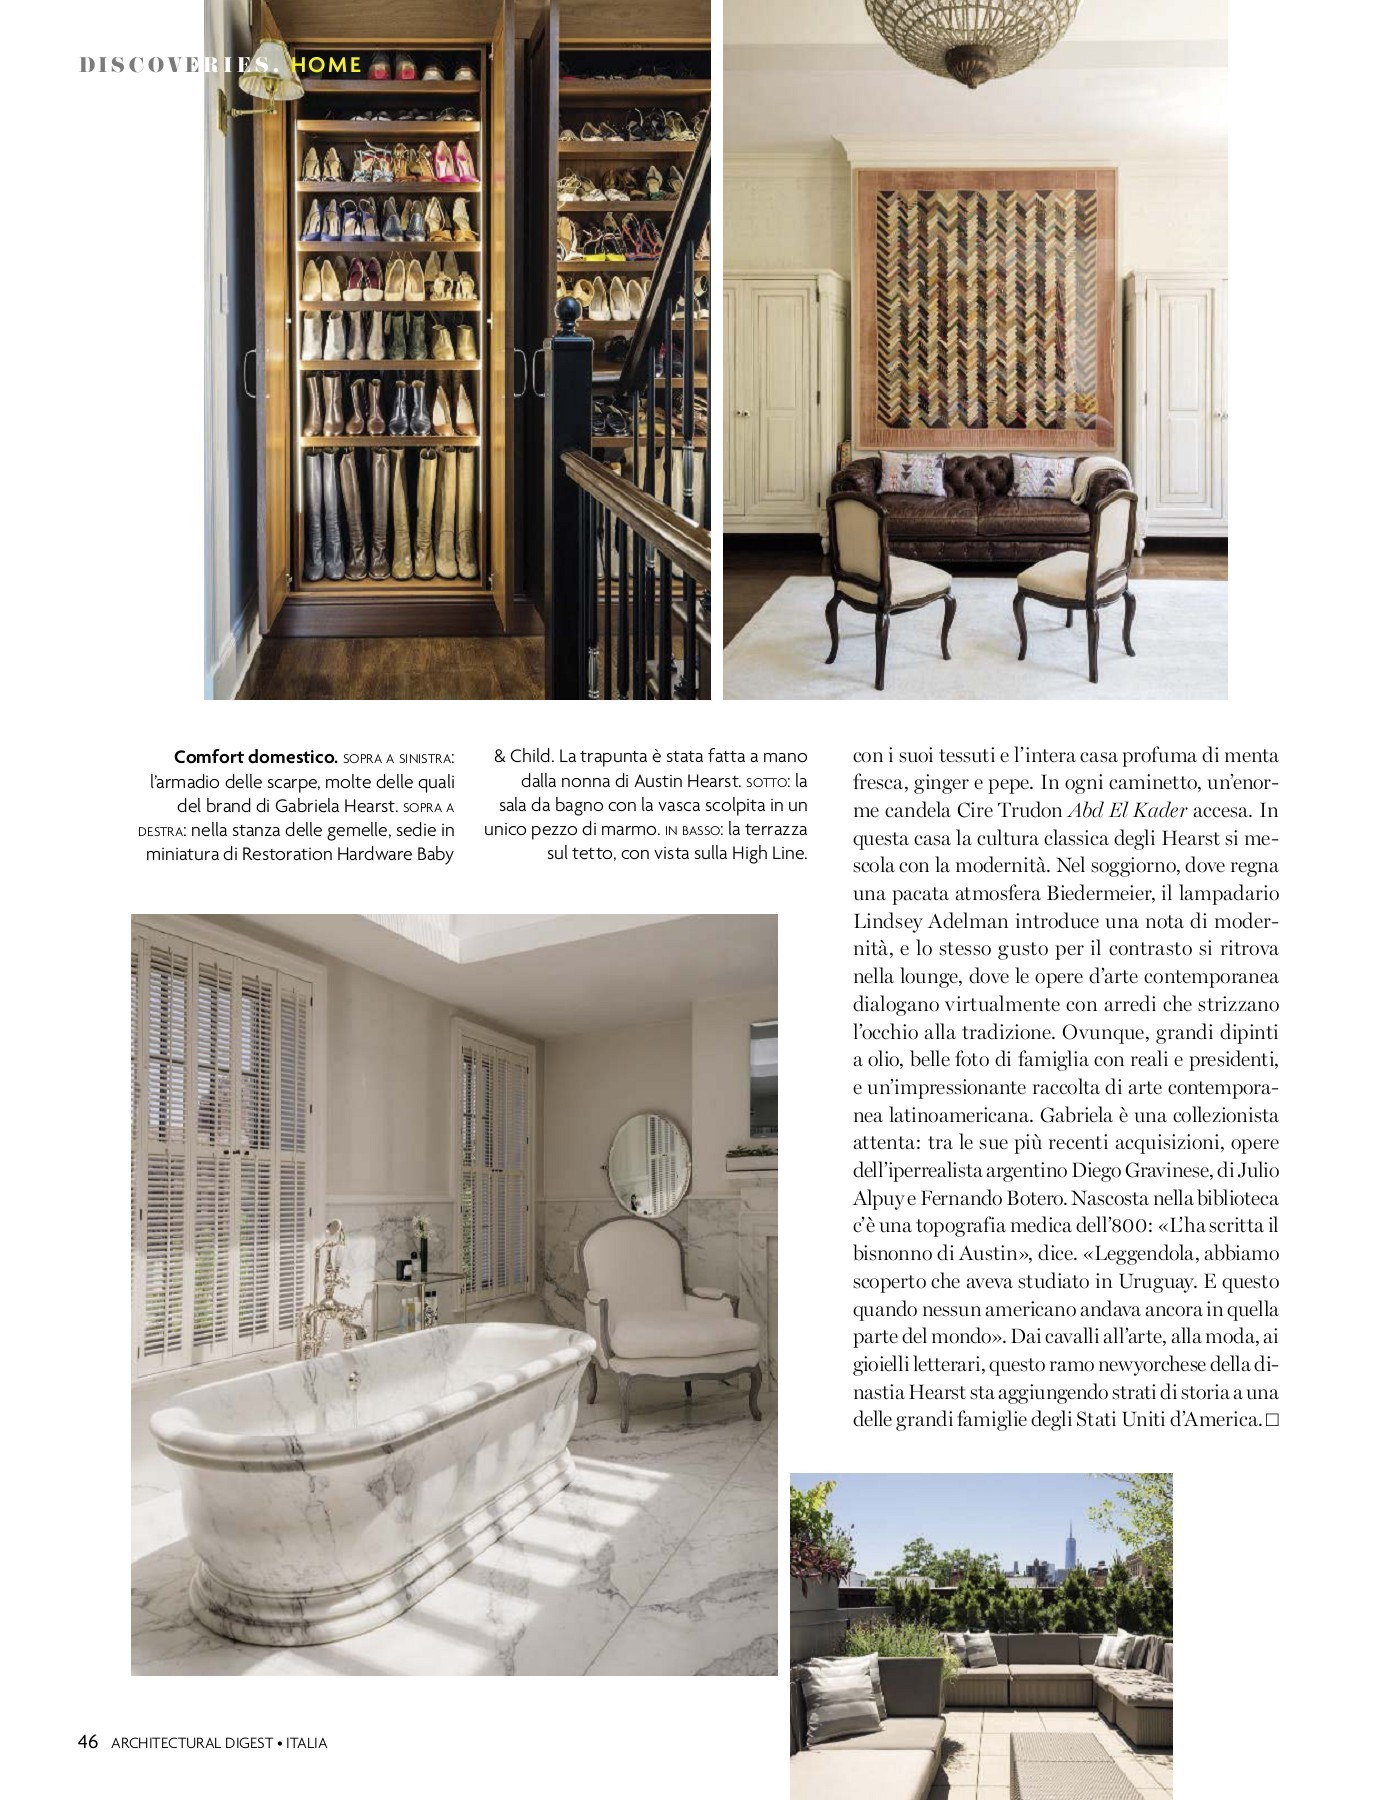 Impianto Idraulico A Vista architectural digest italia_oct 2017-flip book pages 51-100